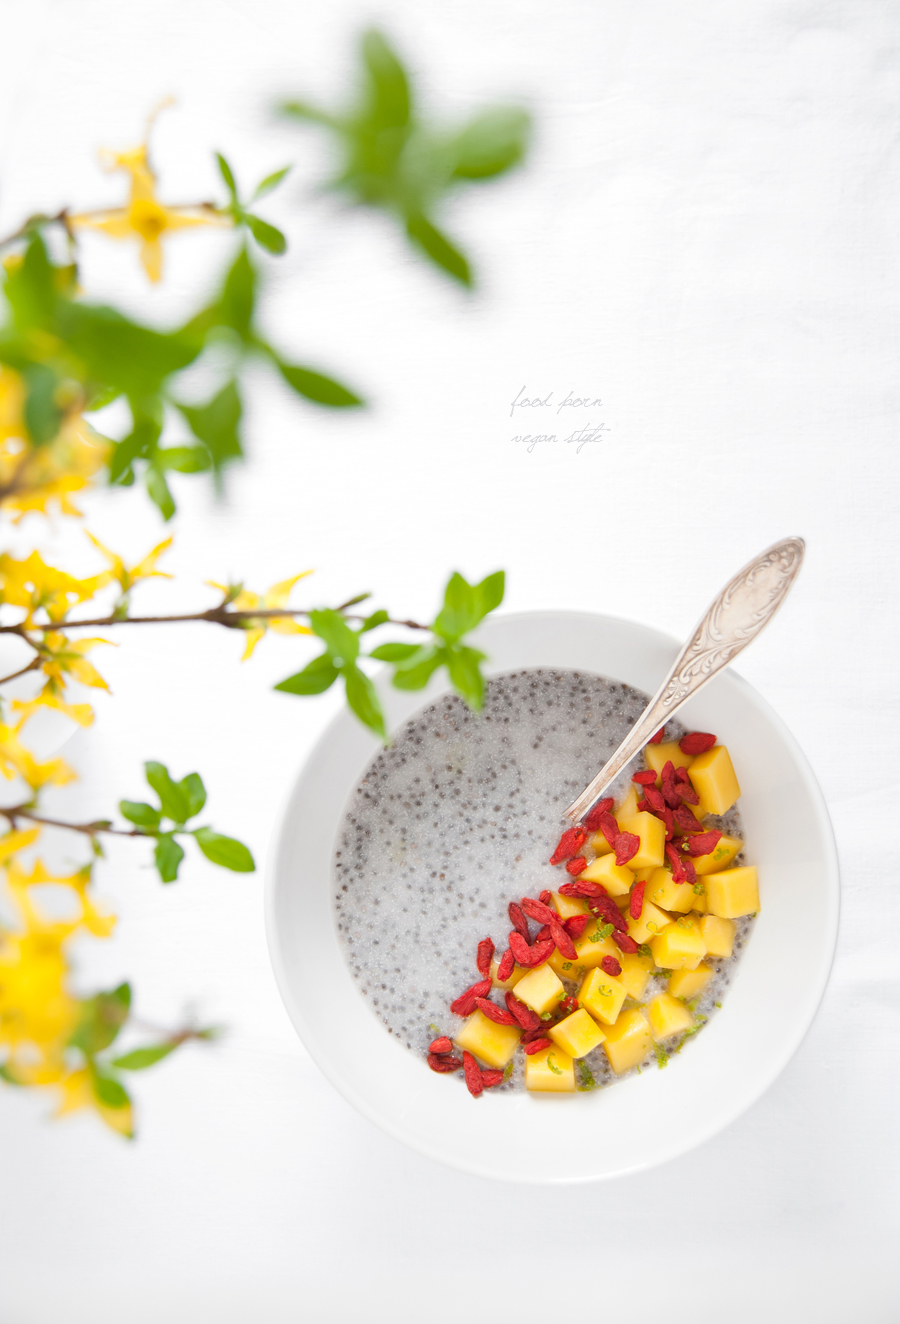 Chia pudding with young coconut meat and mango